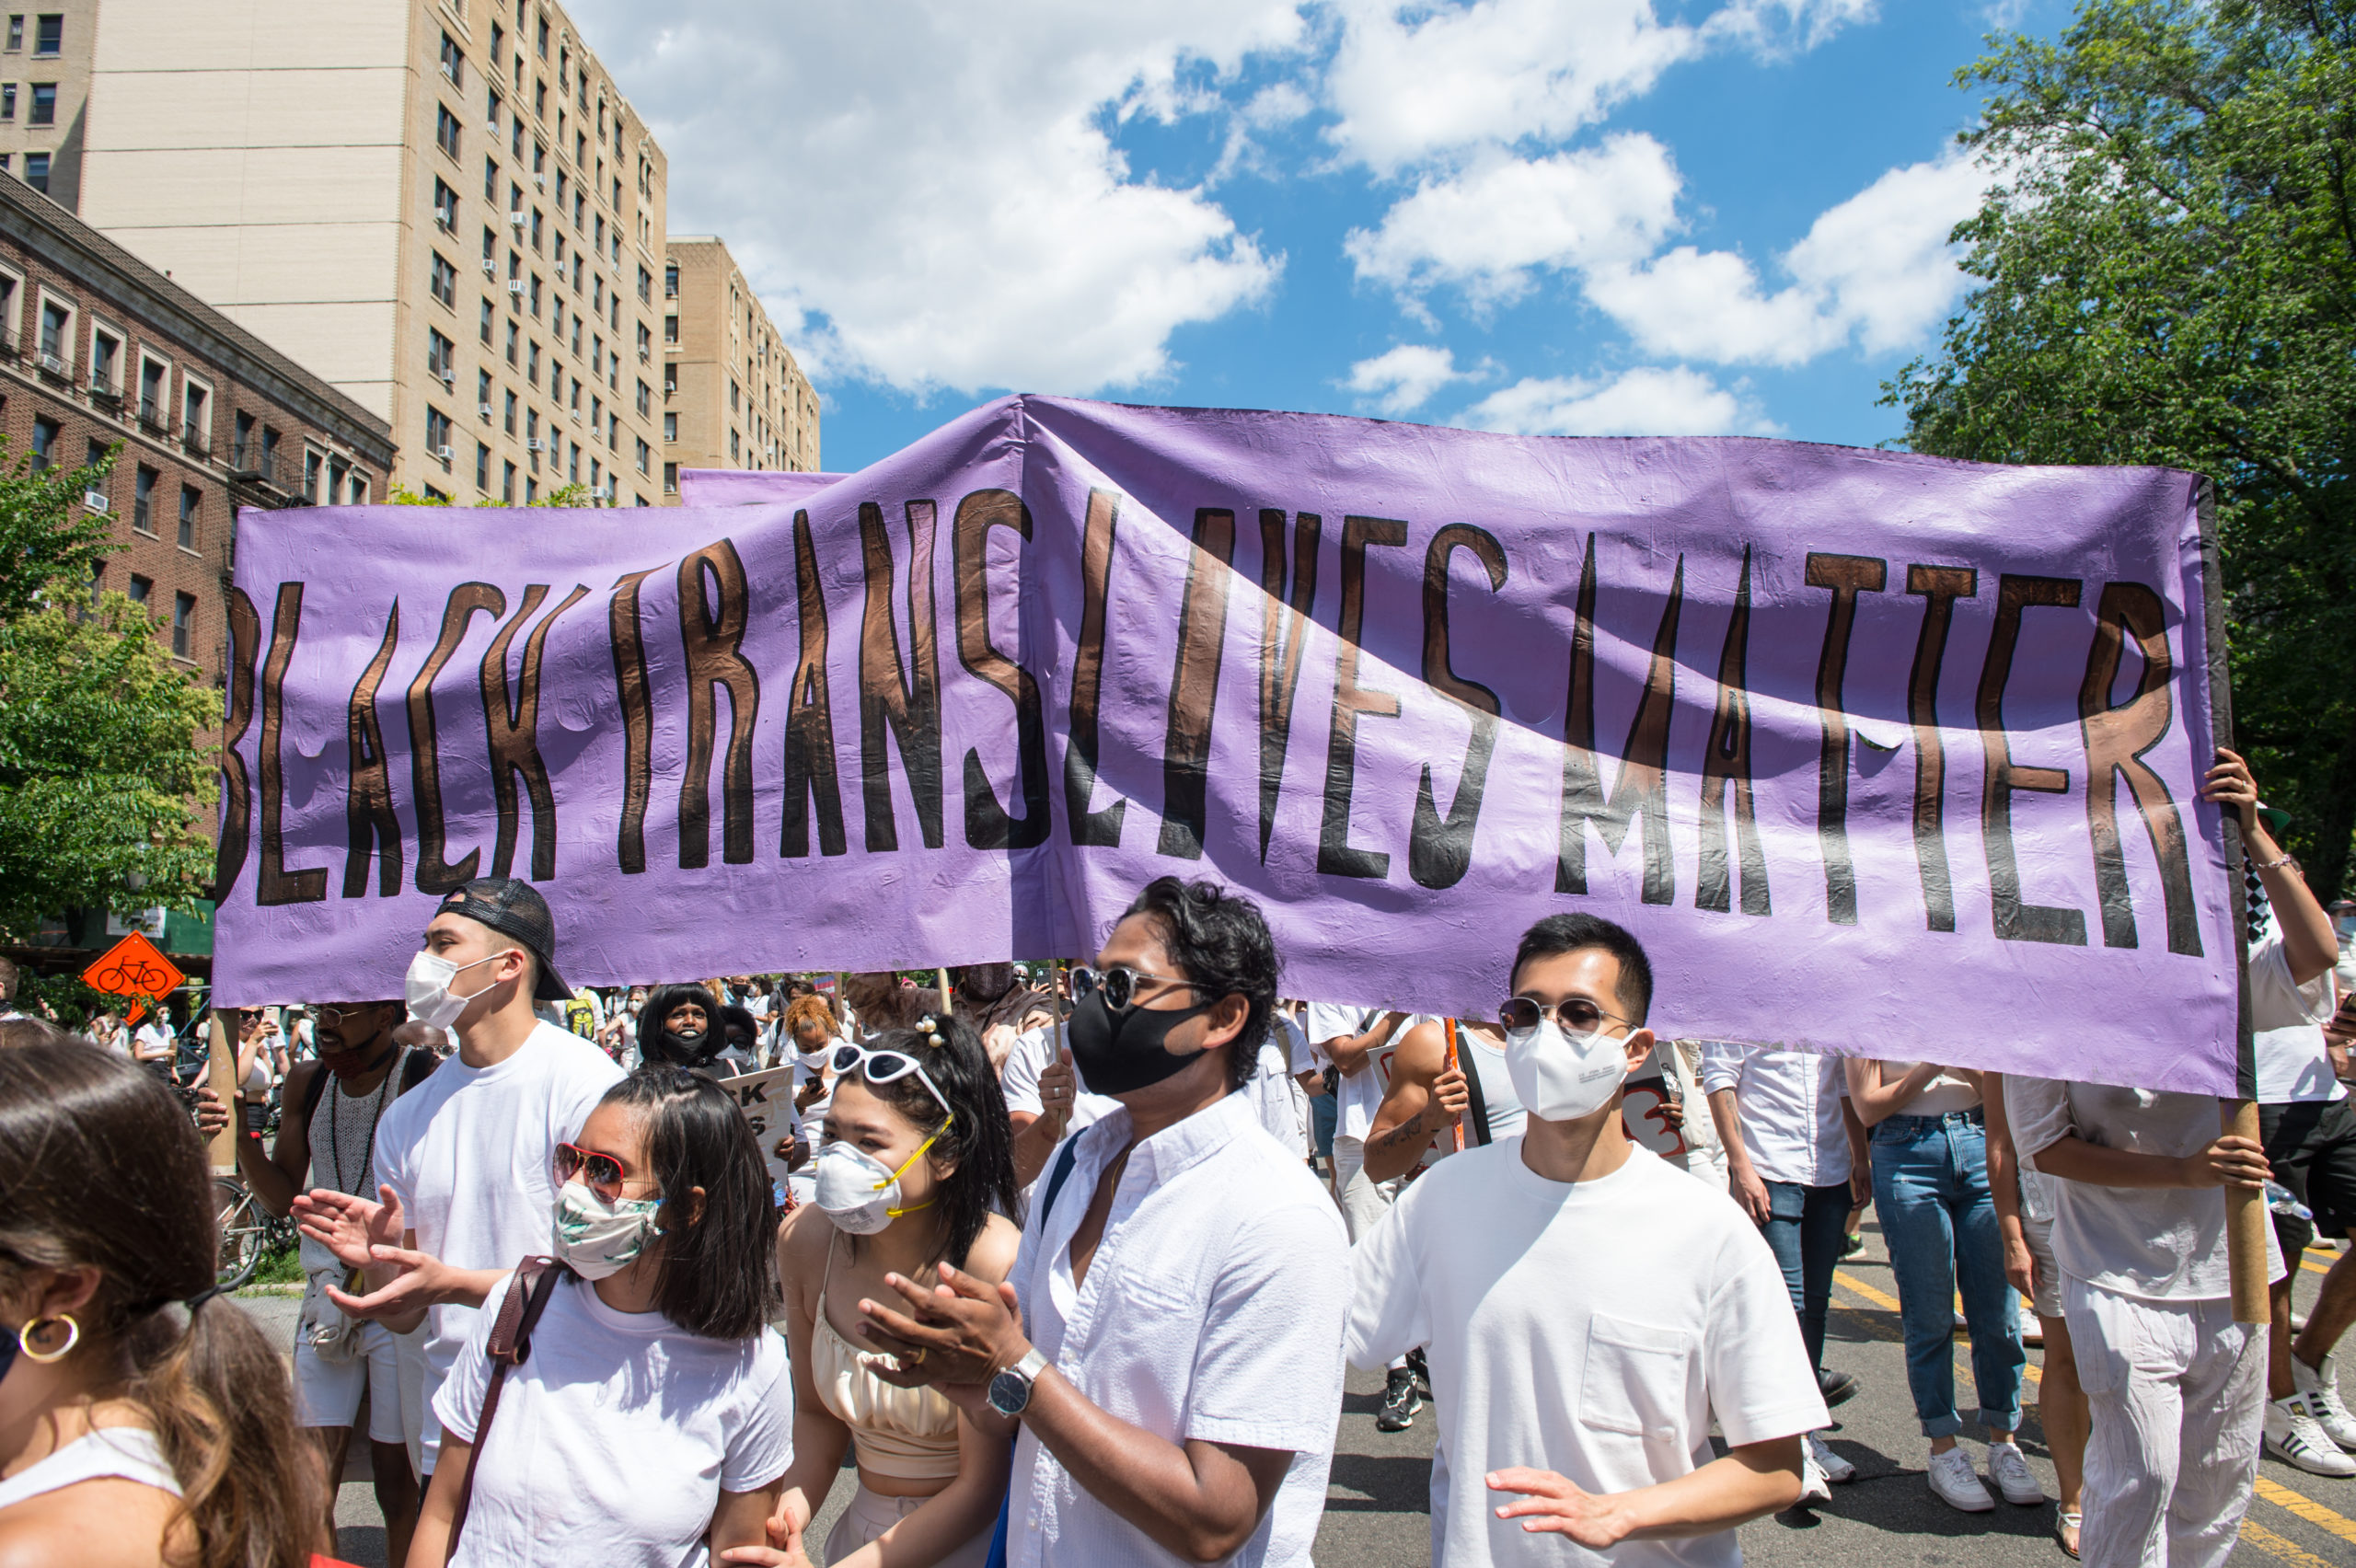 The Brookyn Liberation - An Action for Black Trans Lives Protest held in Brooklyn, New York on June 14, 2020.